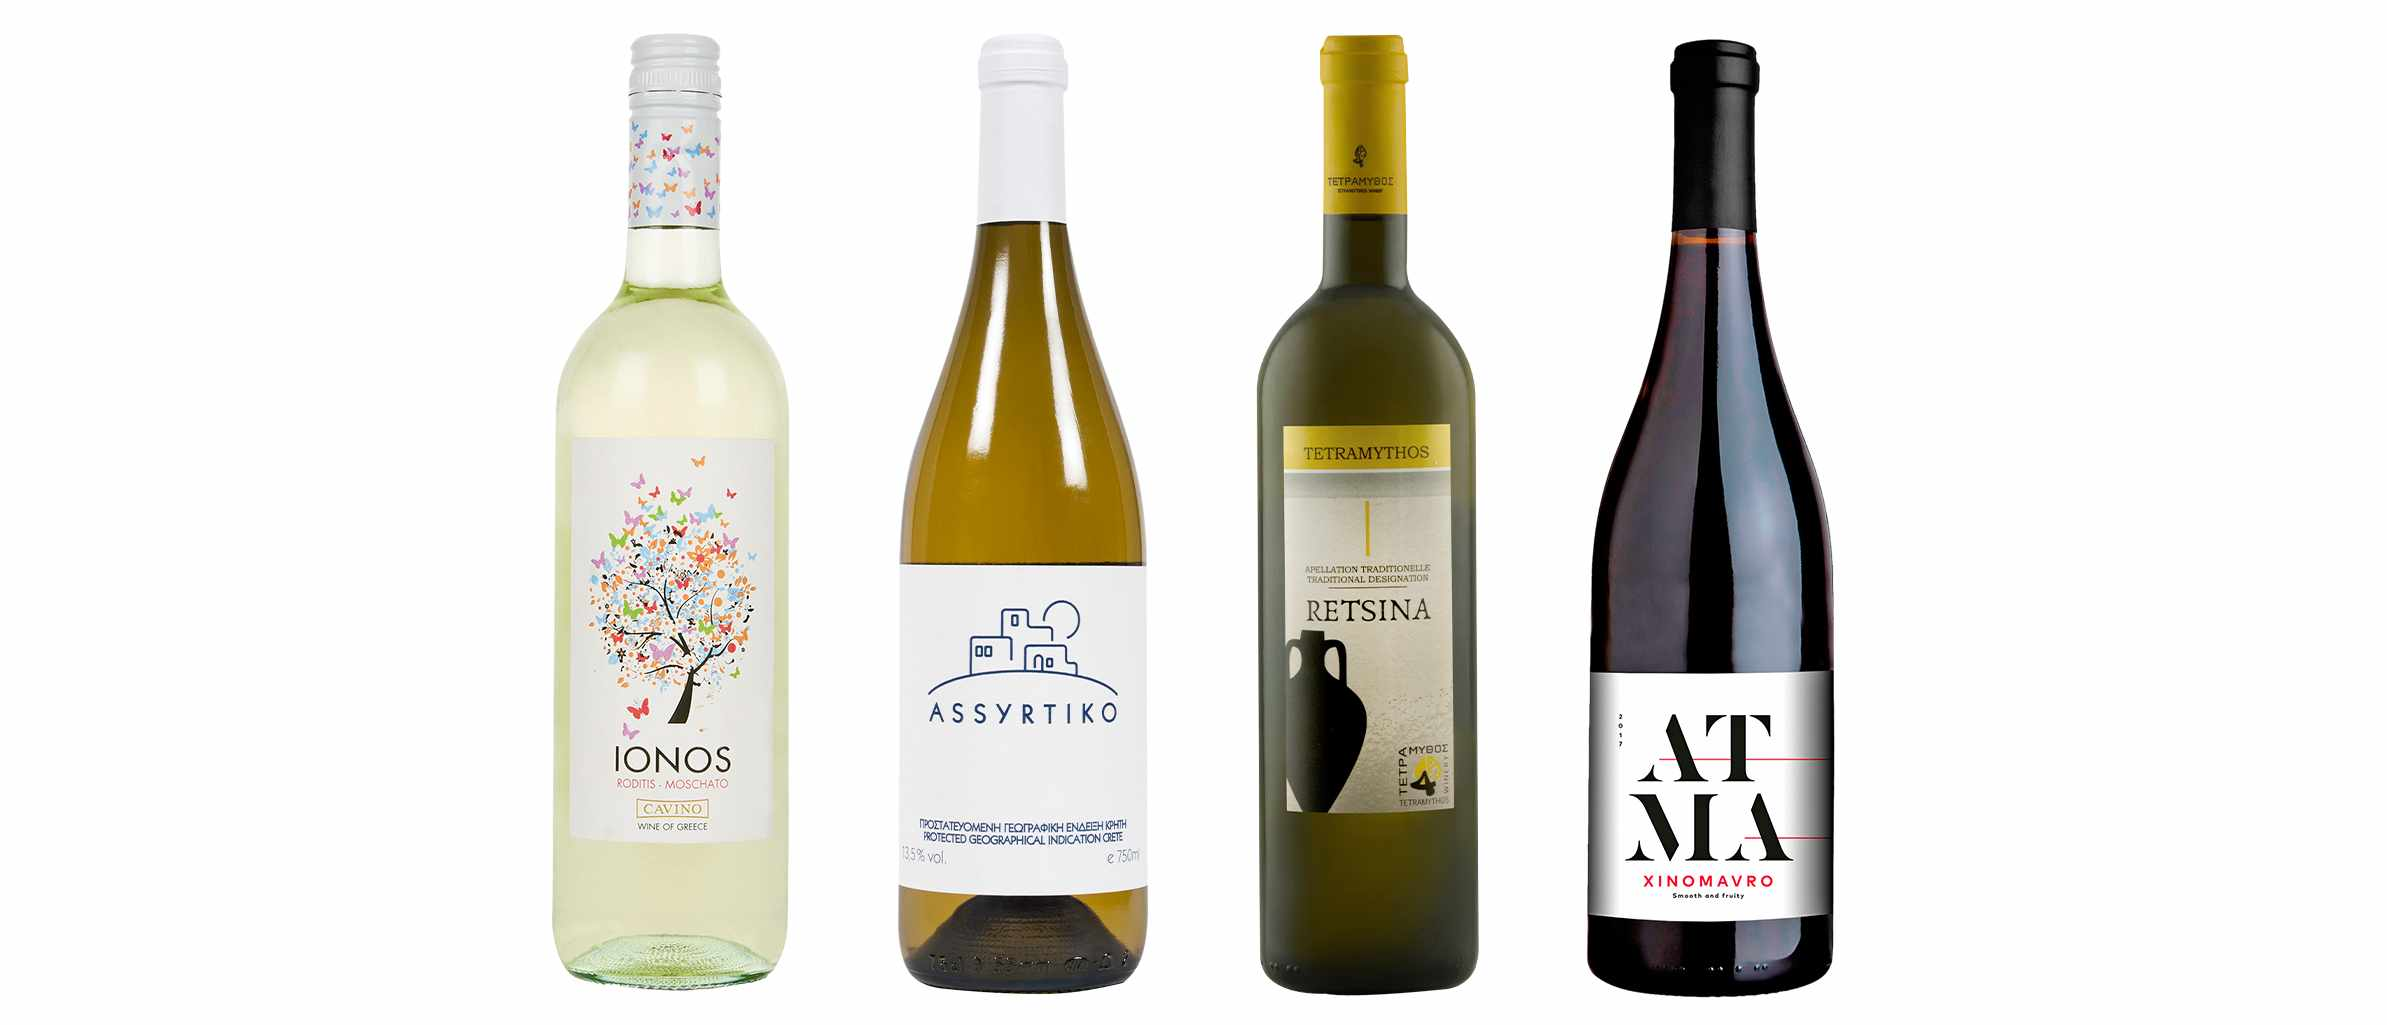 Four bottles of Greek wine in a row. Three are white wine and the fourth is a red wine